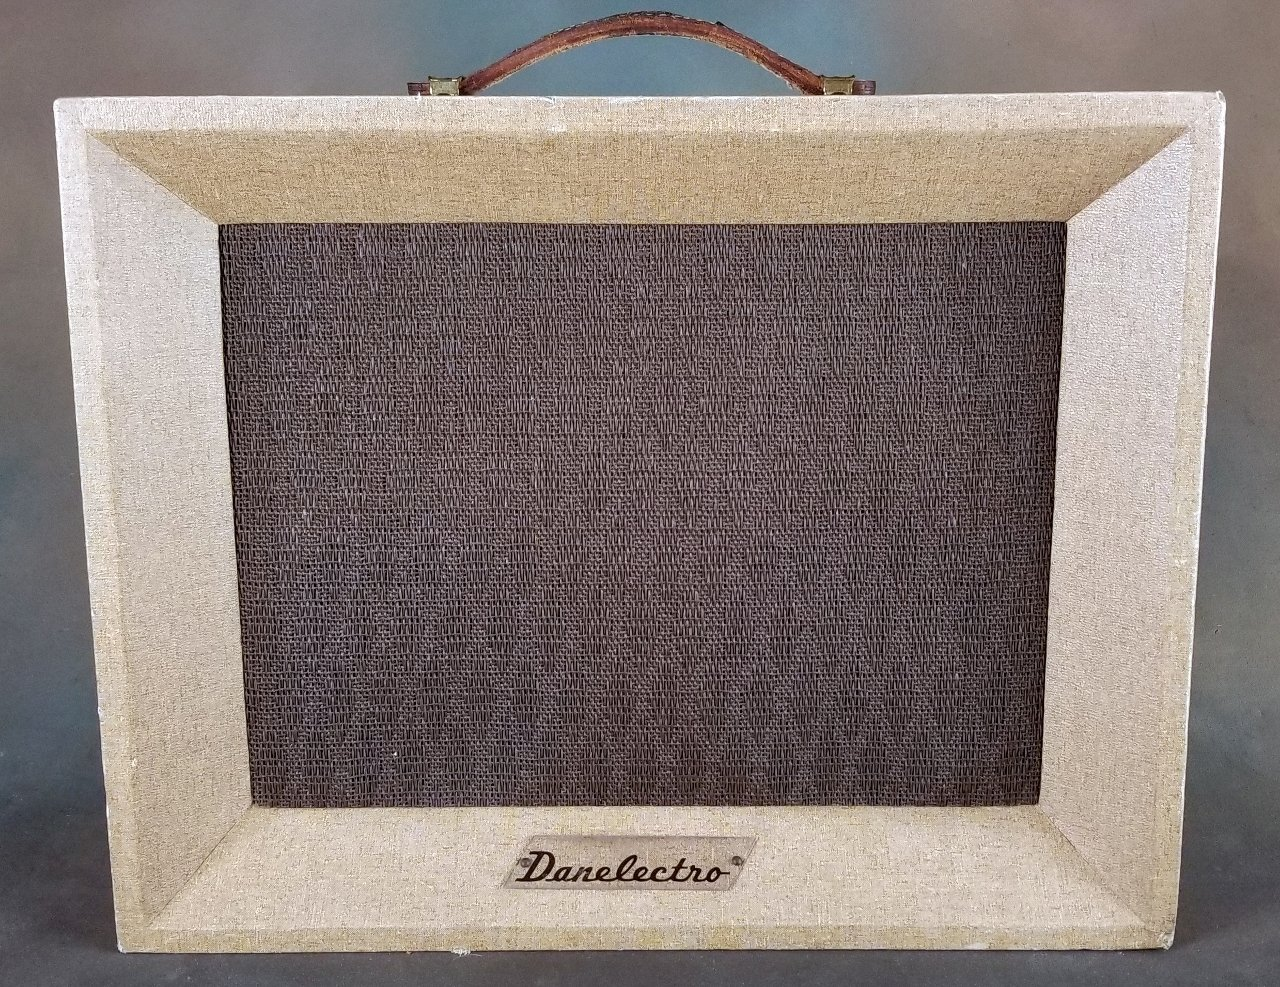 60s Danelectro Corporal Model 132 Amplifier